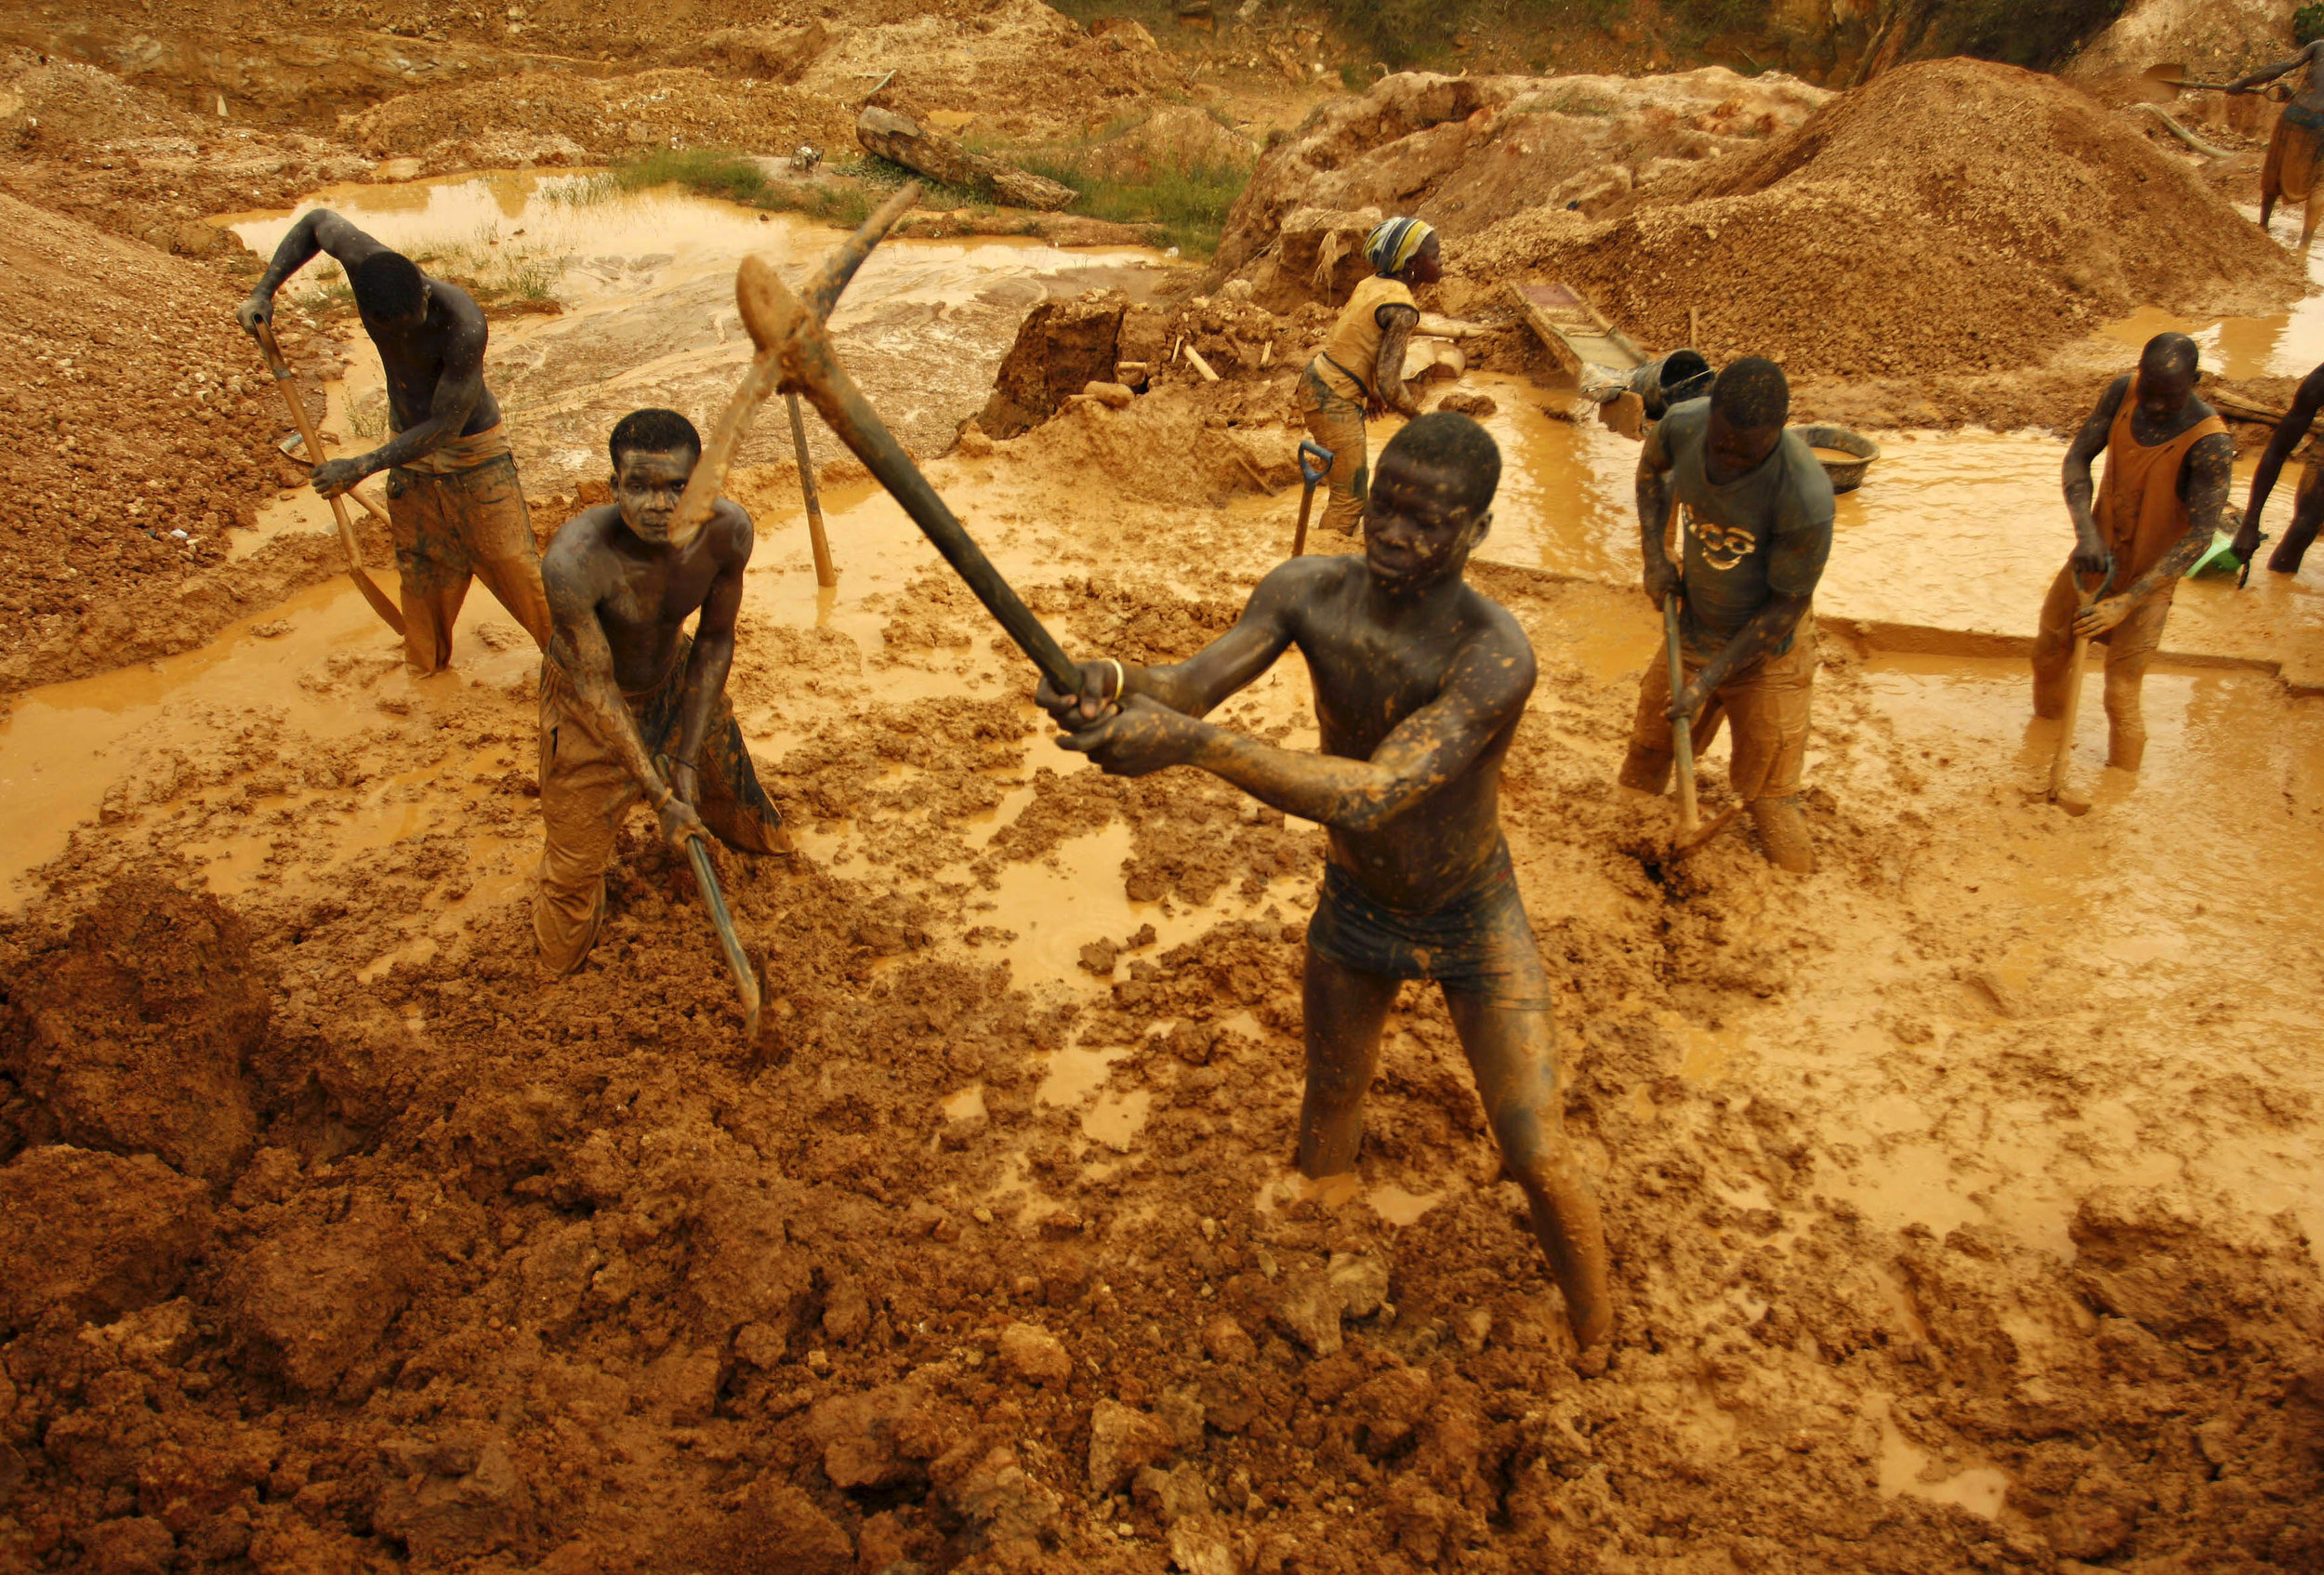 Contemporary West African miners , there is currently a gold rush in The Congo, Ghana and Mali